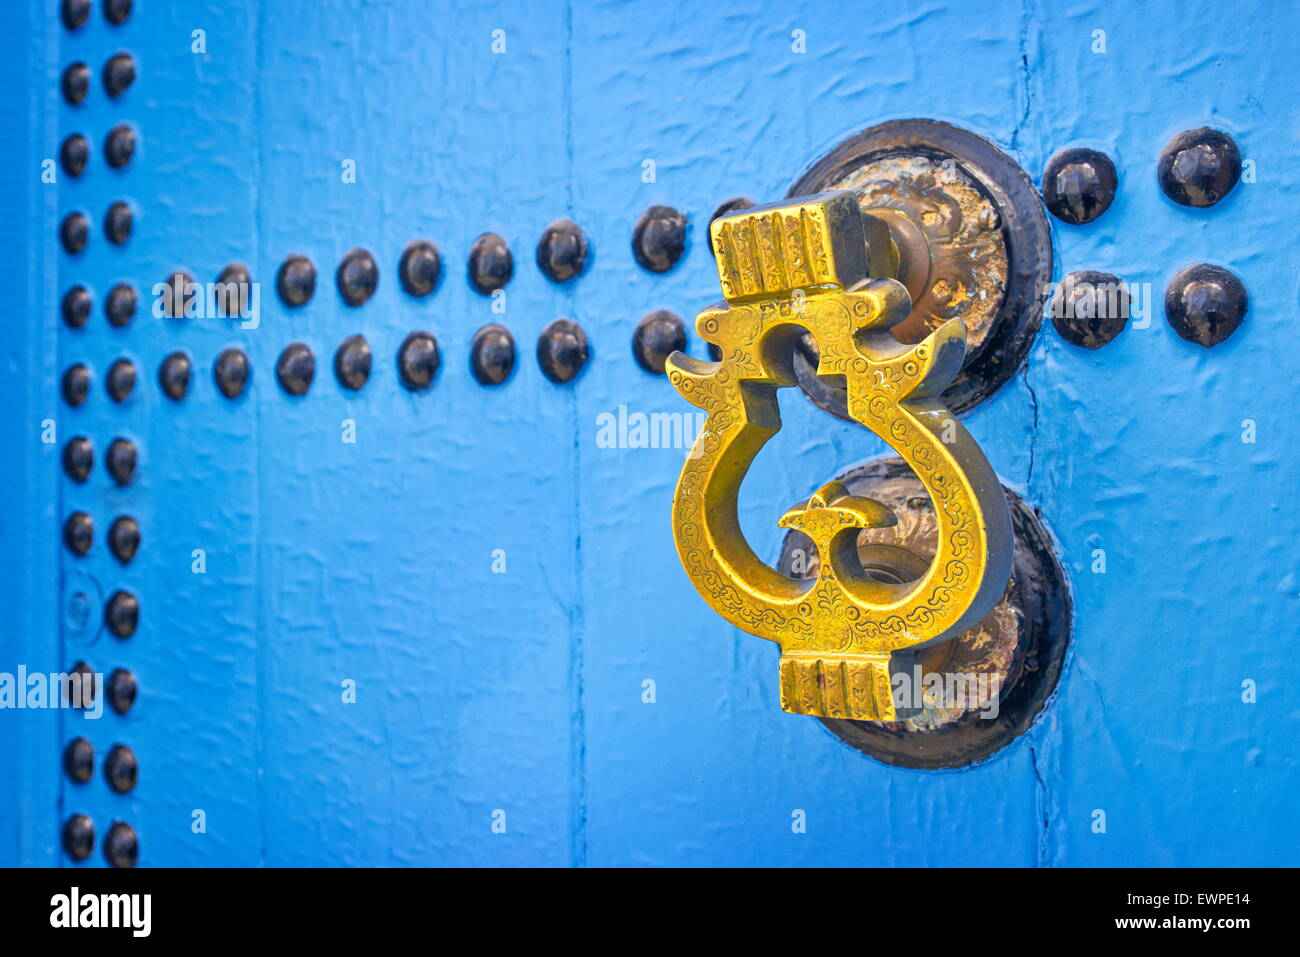 Door knocker, Chefchaouen (Chaouen) known as Blue City, Morocco. - Stock Image